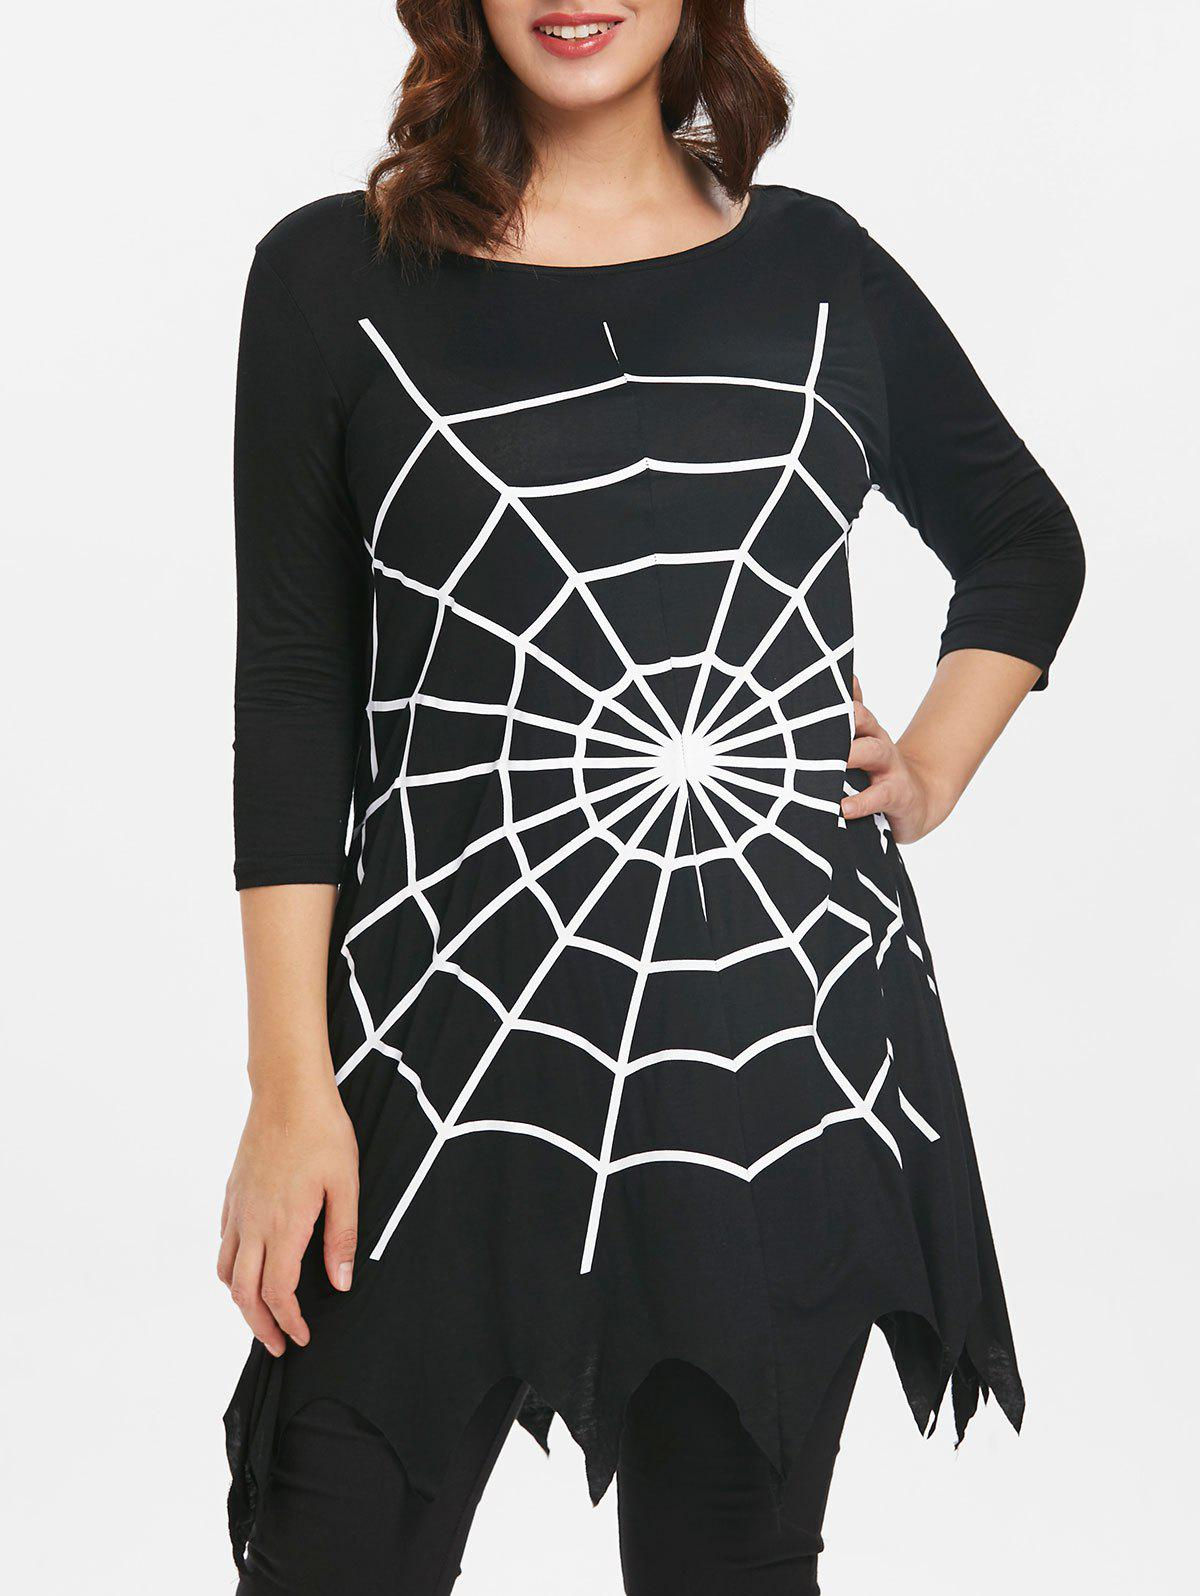 New Plus Size Halloween Asymmetrical Spider Web T-shirt